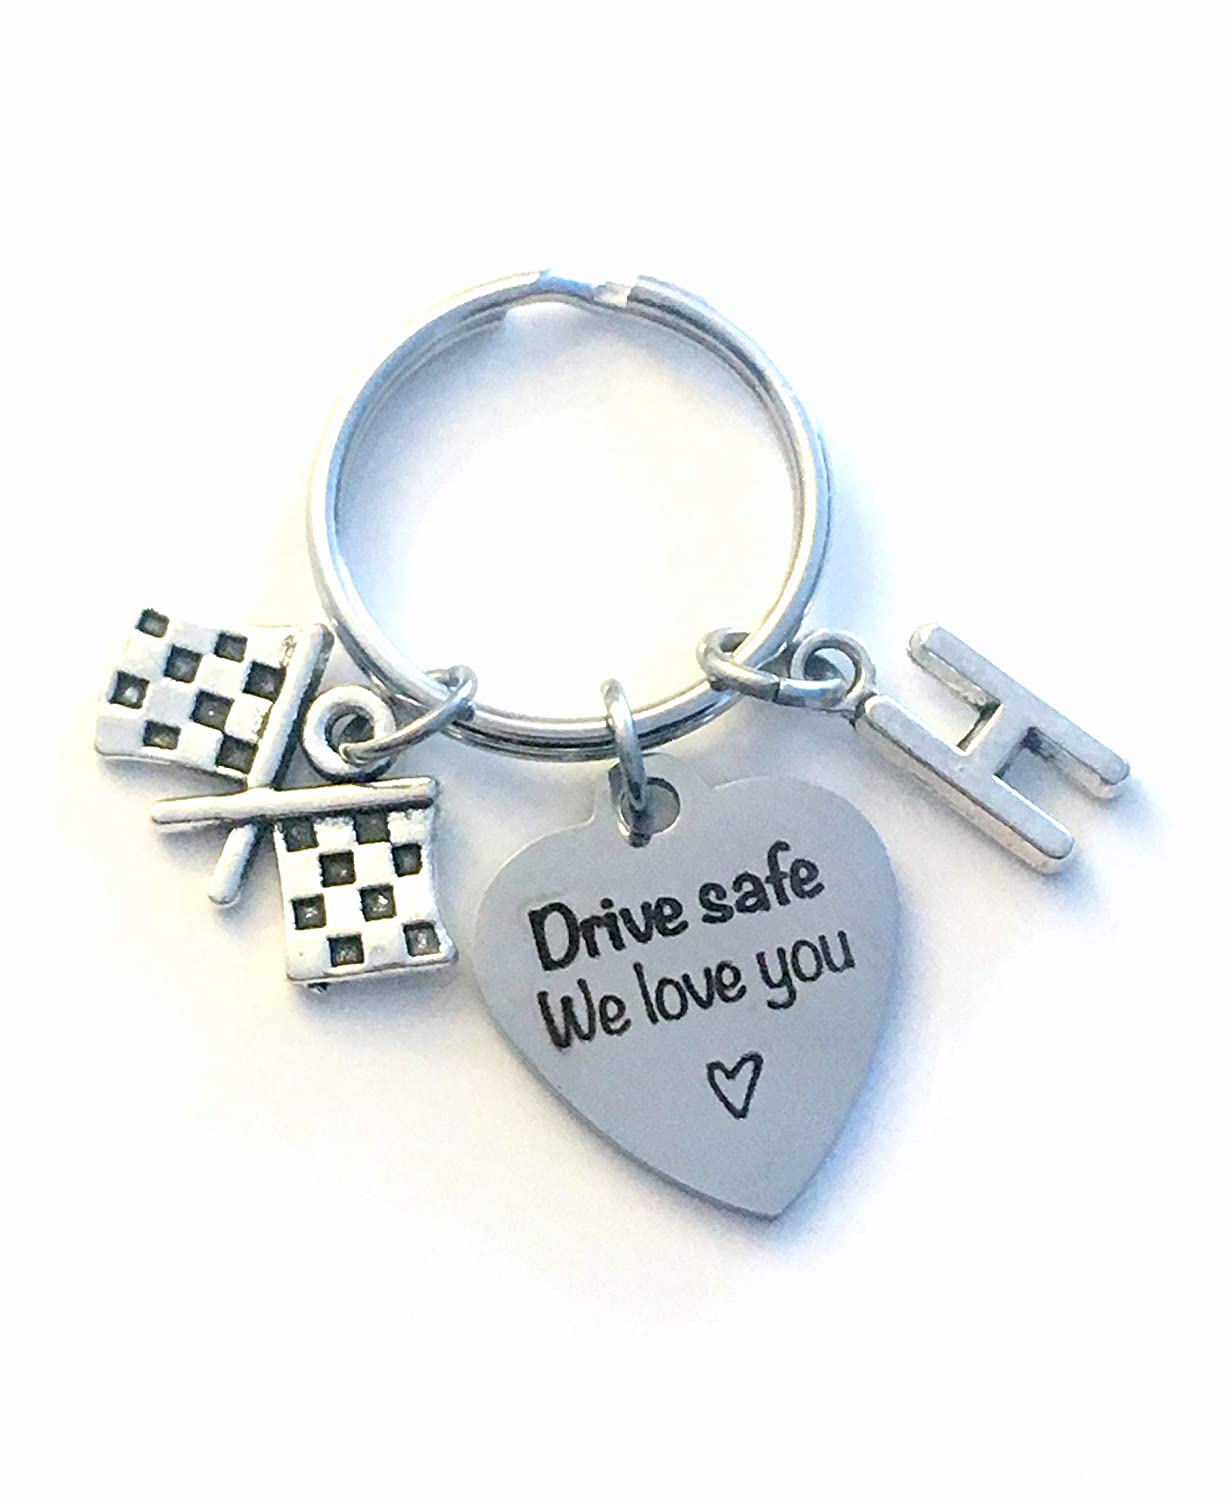 Birthday Limited Special Price Gift for Him Drive safe you love Ranking TOP15 Keychain Daughter we